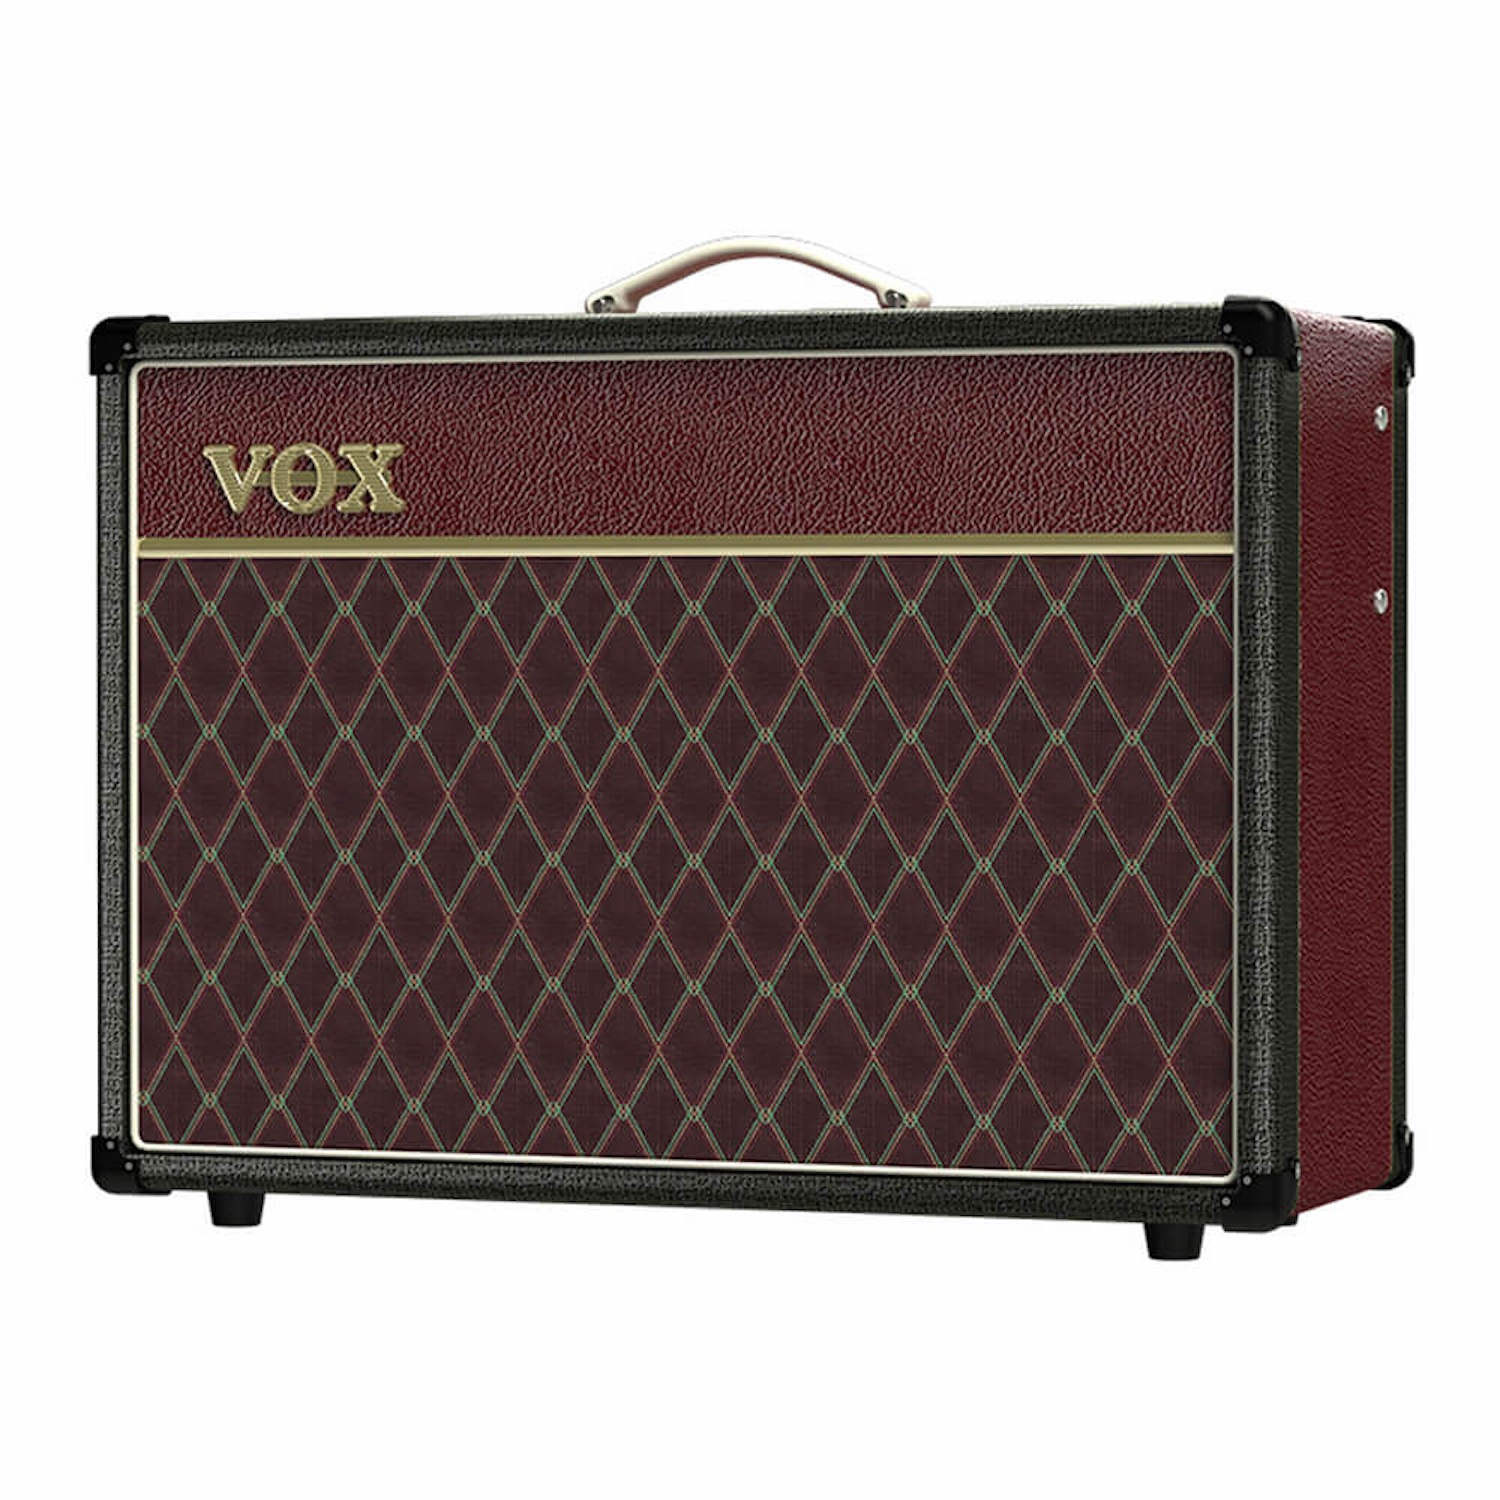 Vox AC15C1-TTBM Two Tone Black and Maroon Guitar Amplifier